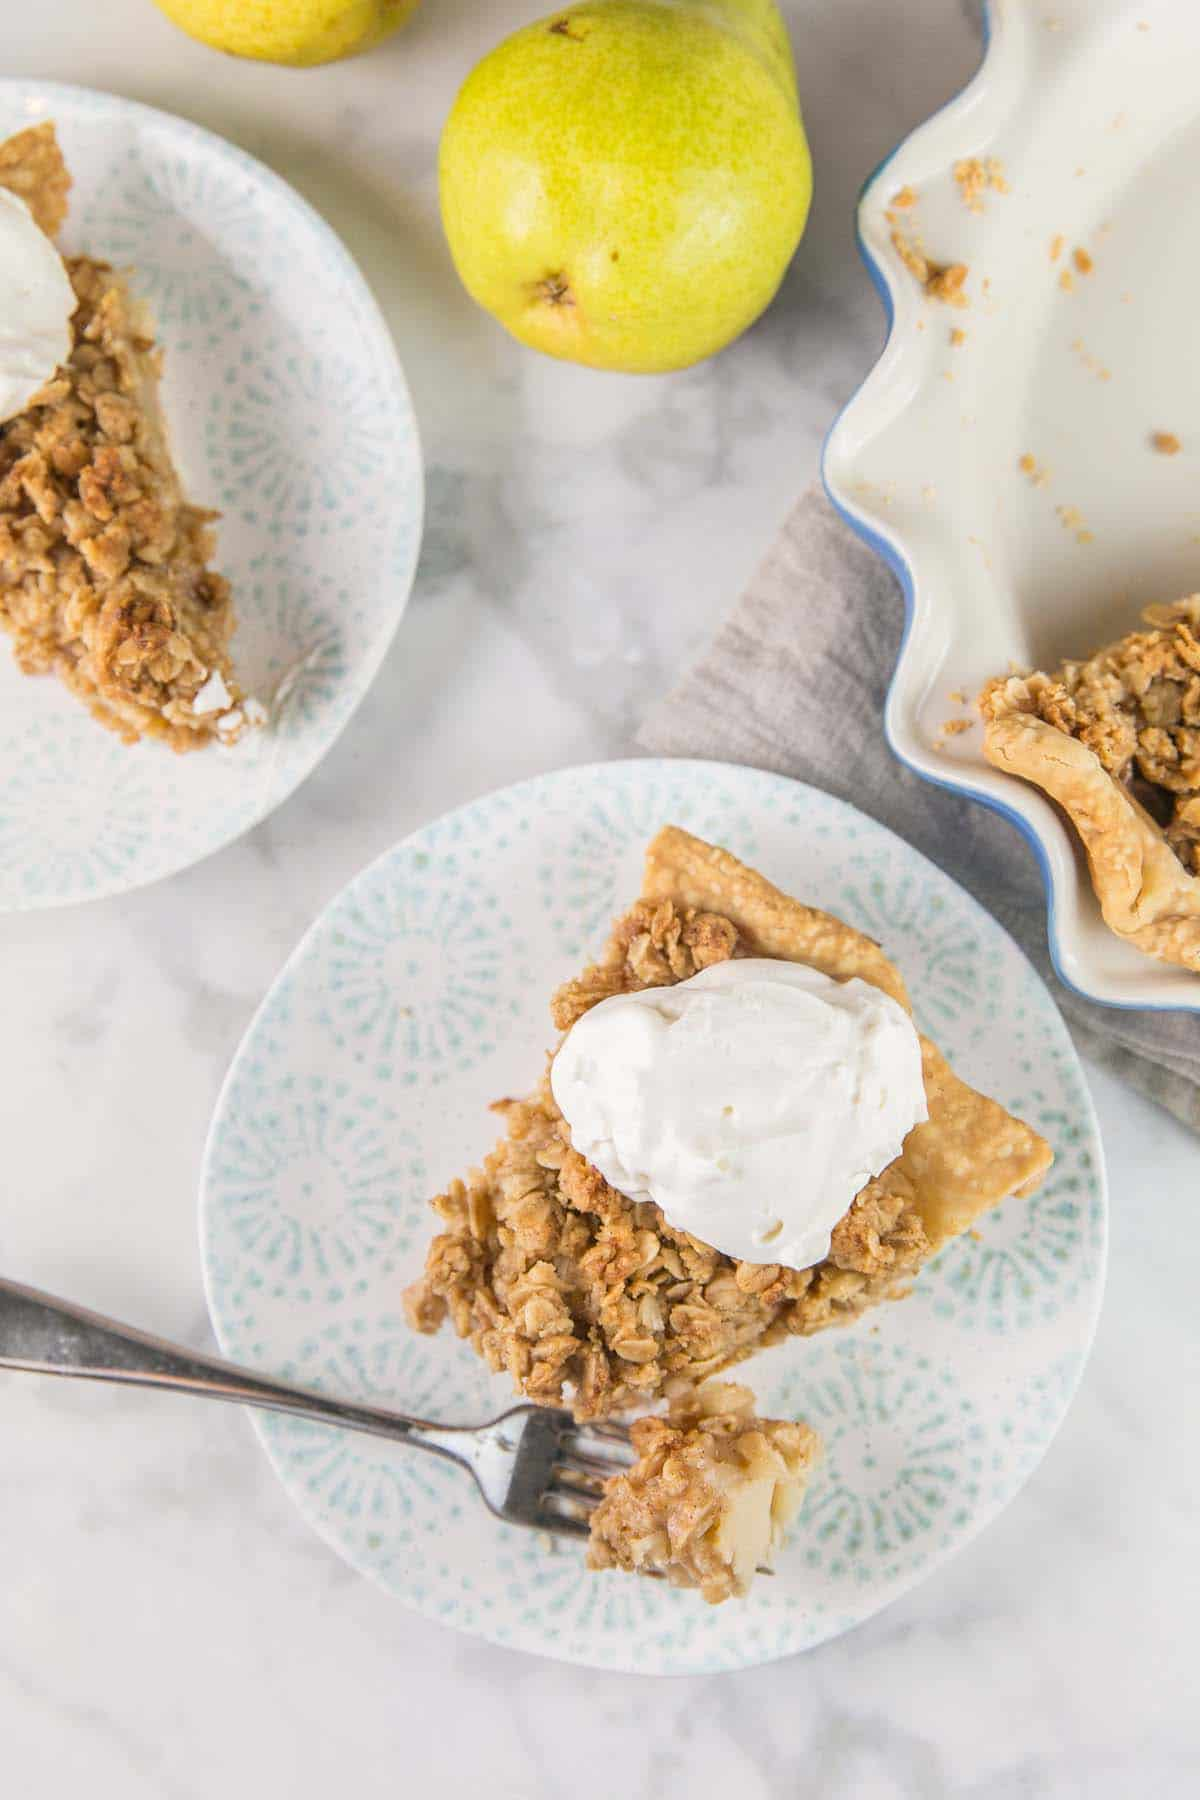 slices of caramel pear pie with a dollop of whipped cream on a blue and white plate with one forkful of pie removed